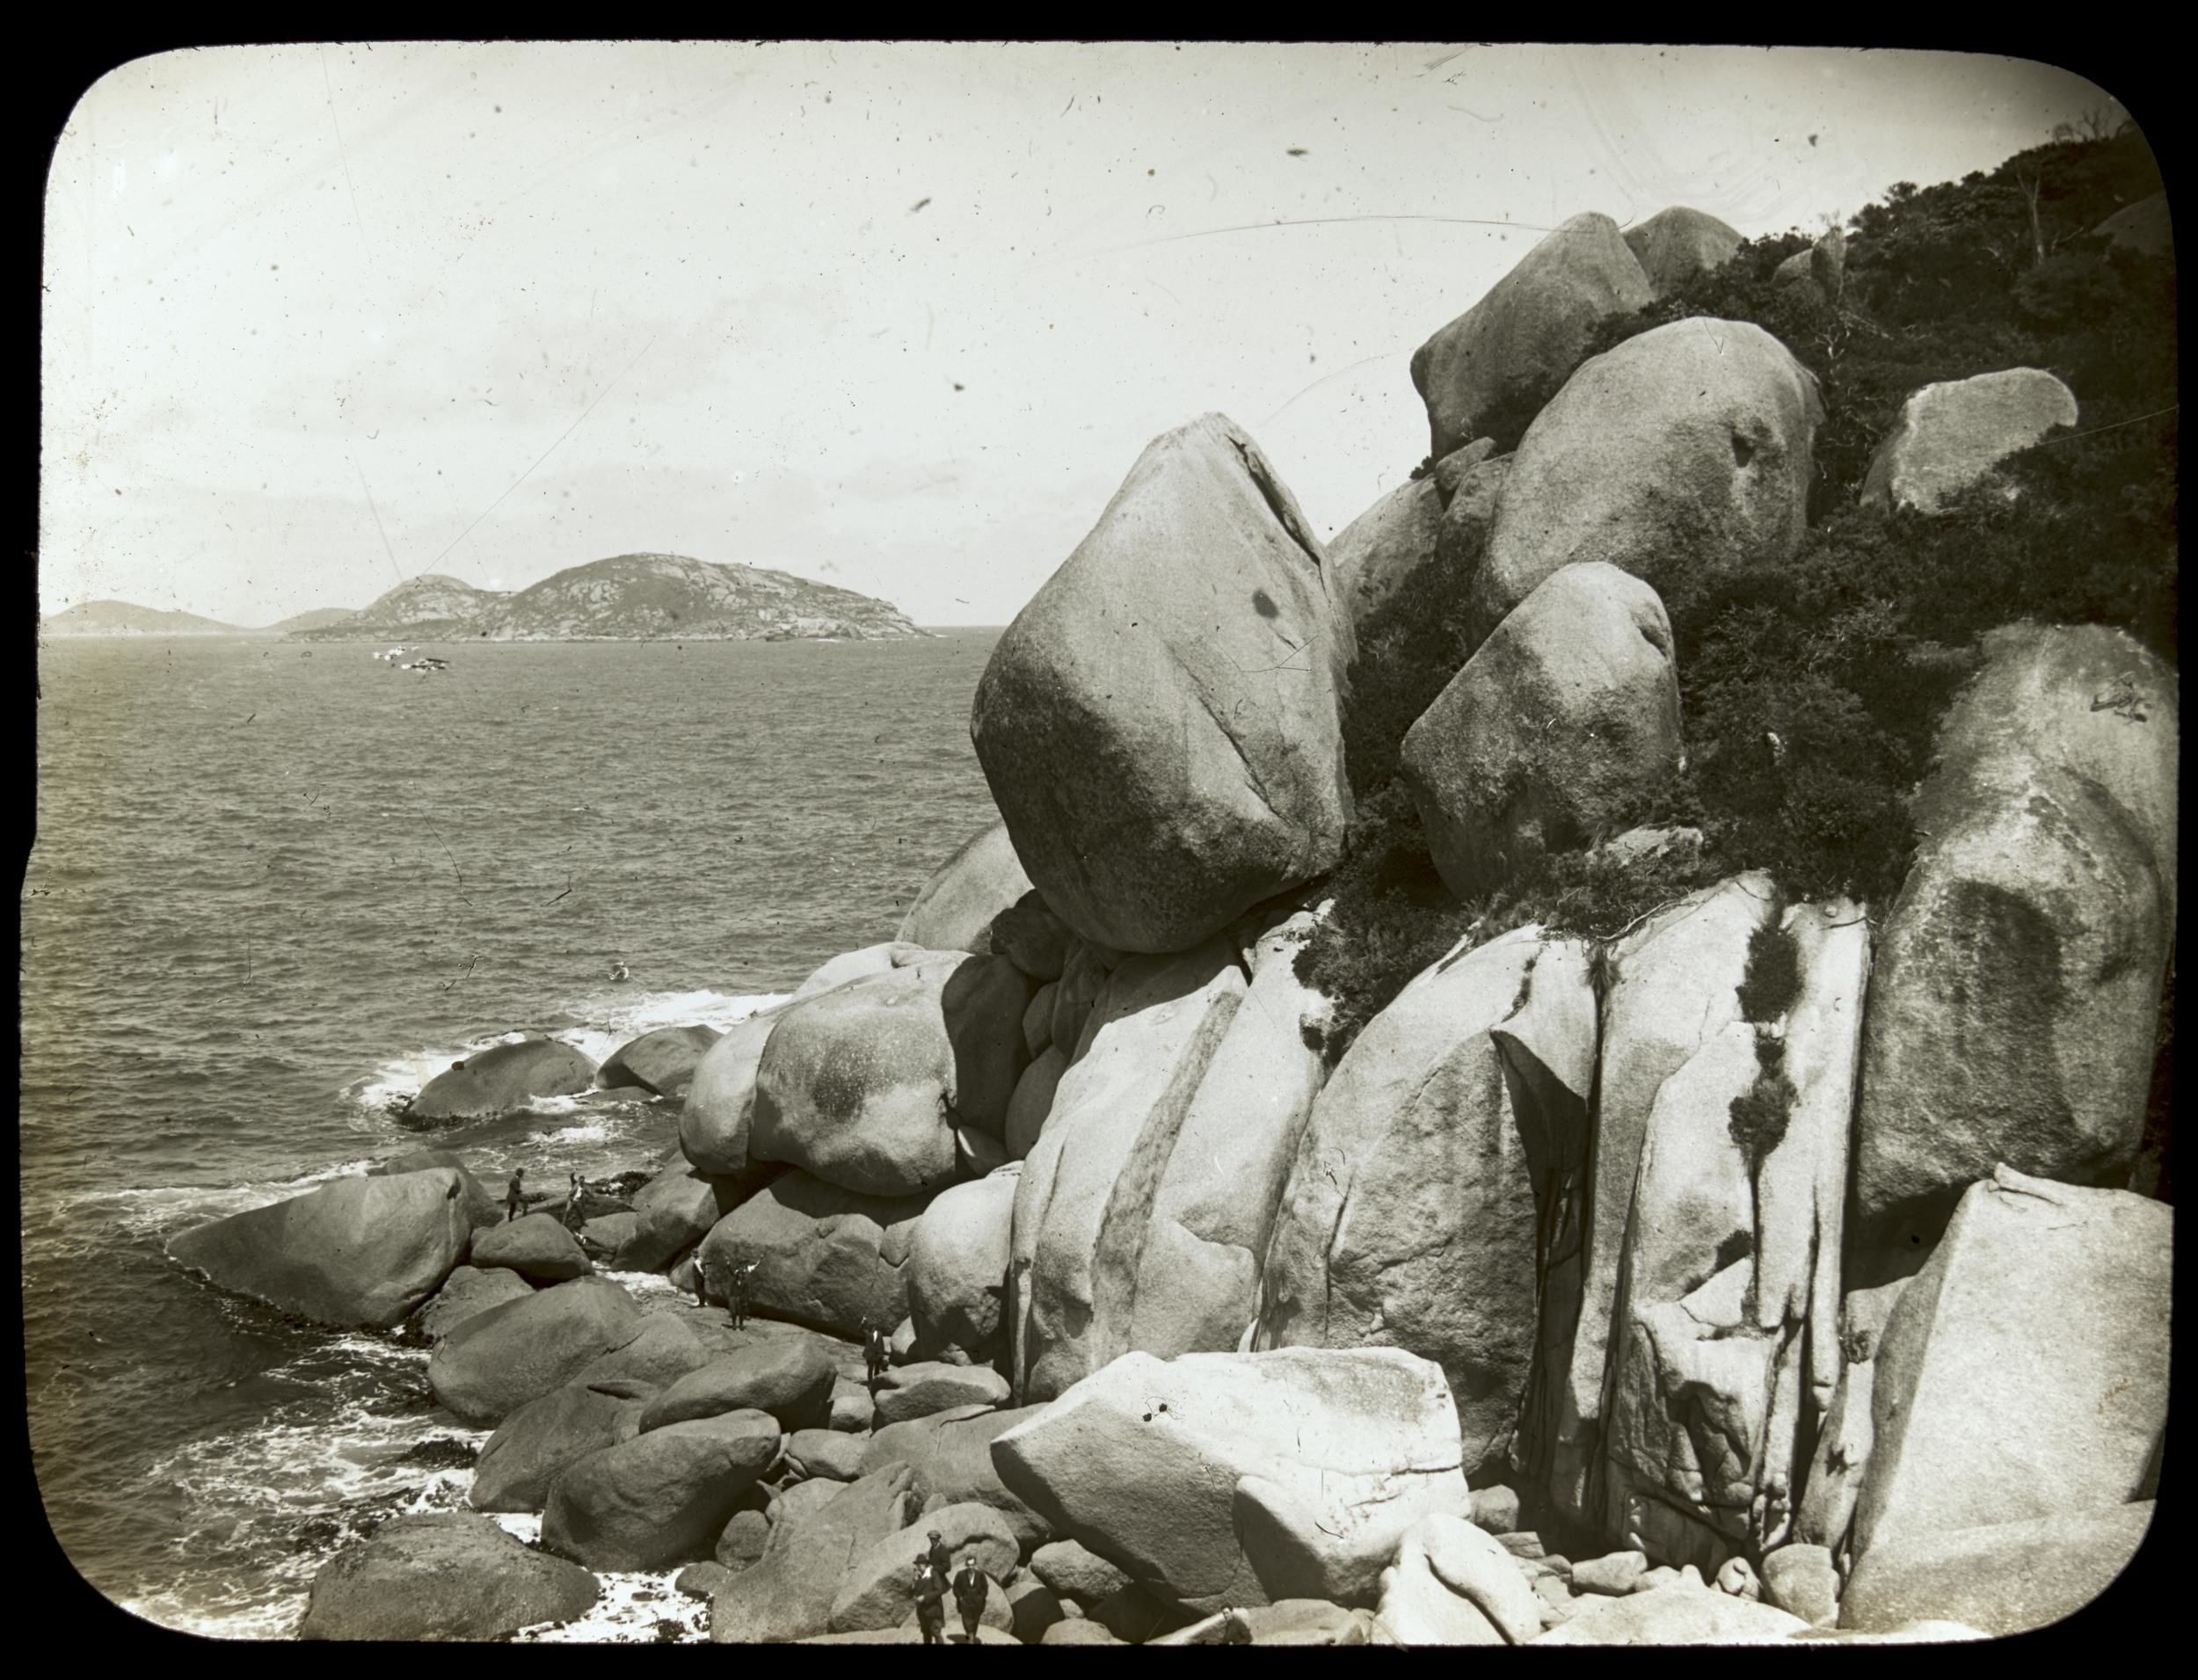 Wilson's Promontory, Cyril Stainer (photographer), glass lantern slide, c.1890-1930, SLV